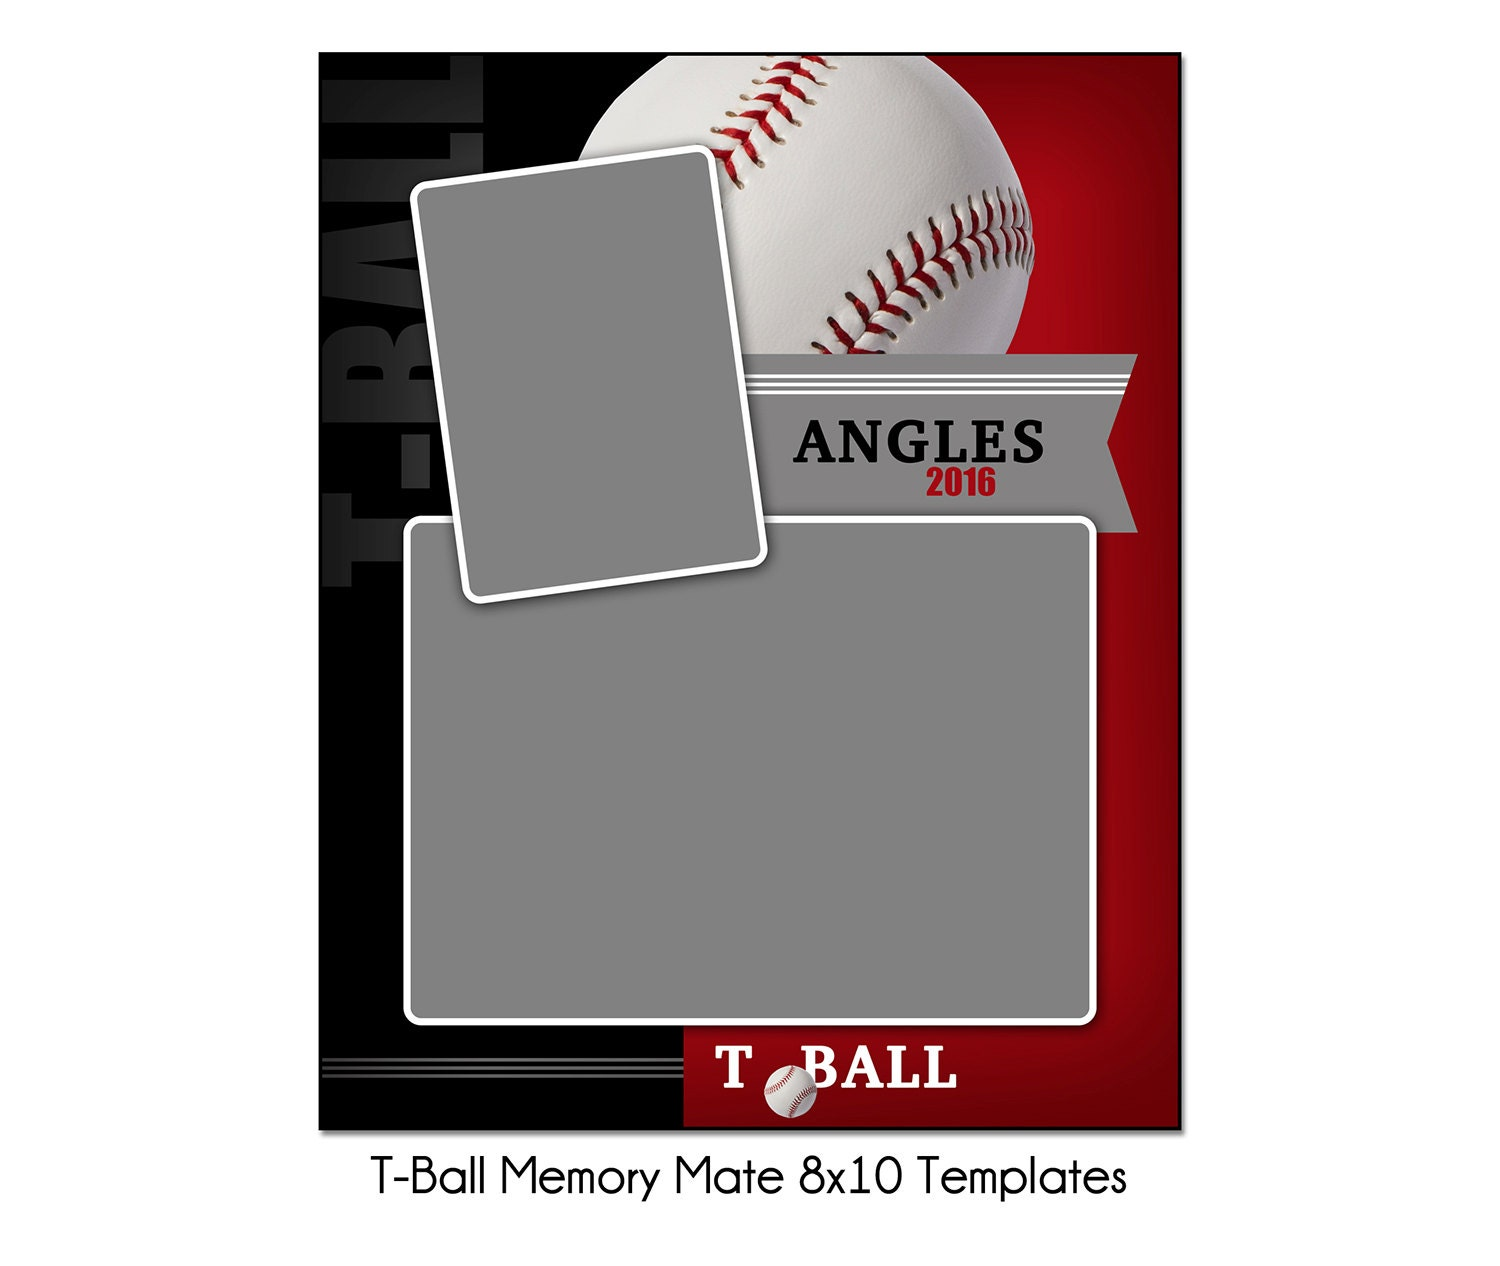 t ball mm2 8x10 memory mate sports photo template digital file from katieanndesigns on etsy. Black Bedroom Furniture Sets. Home Design Ideas